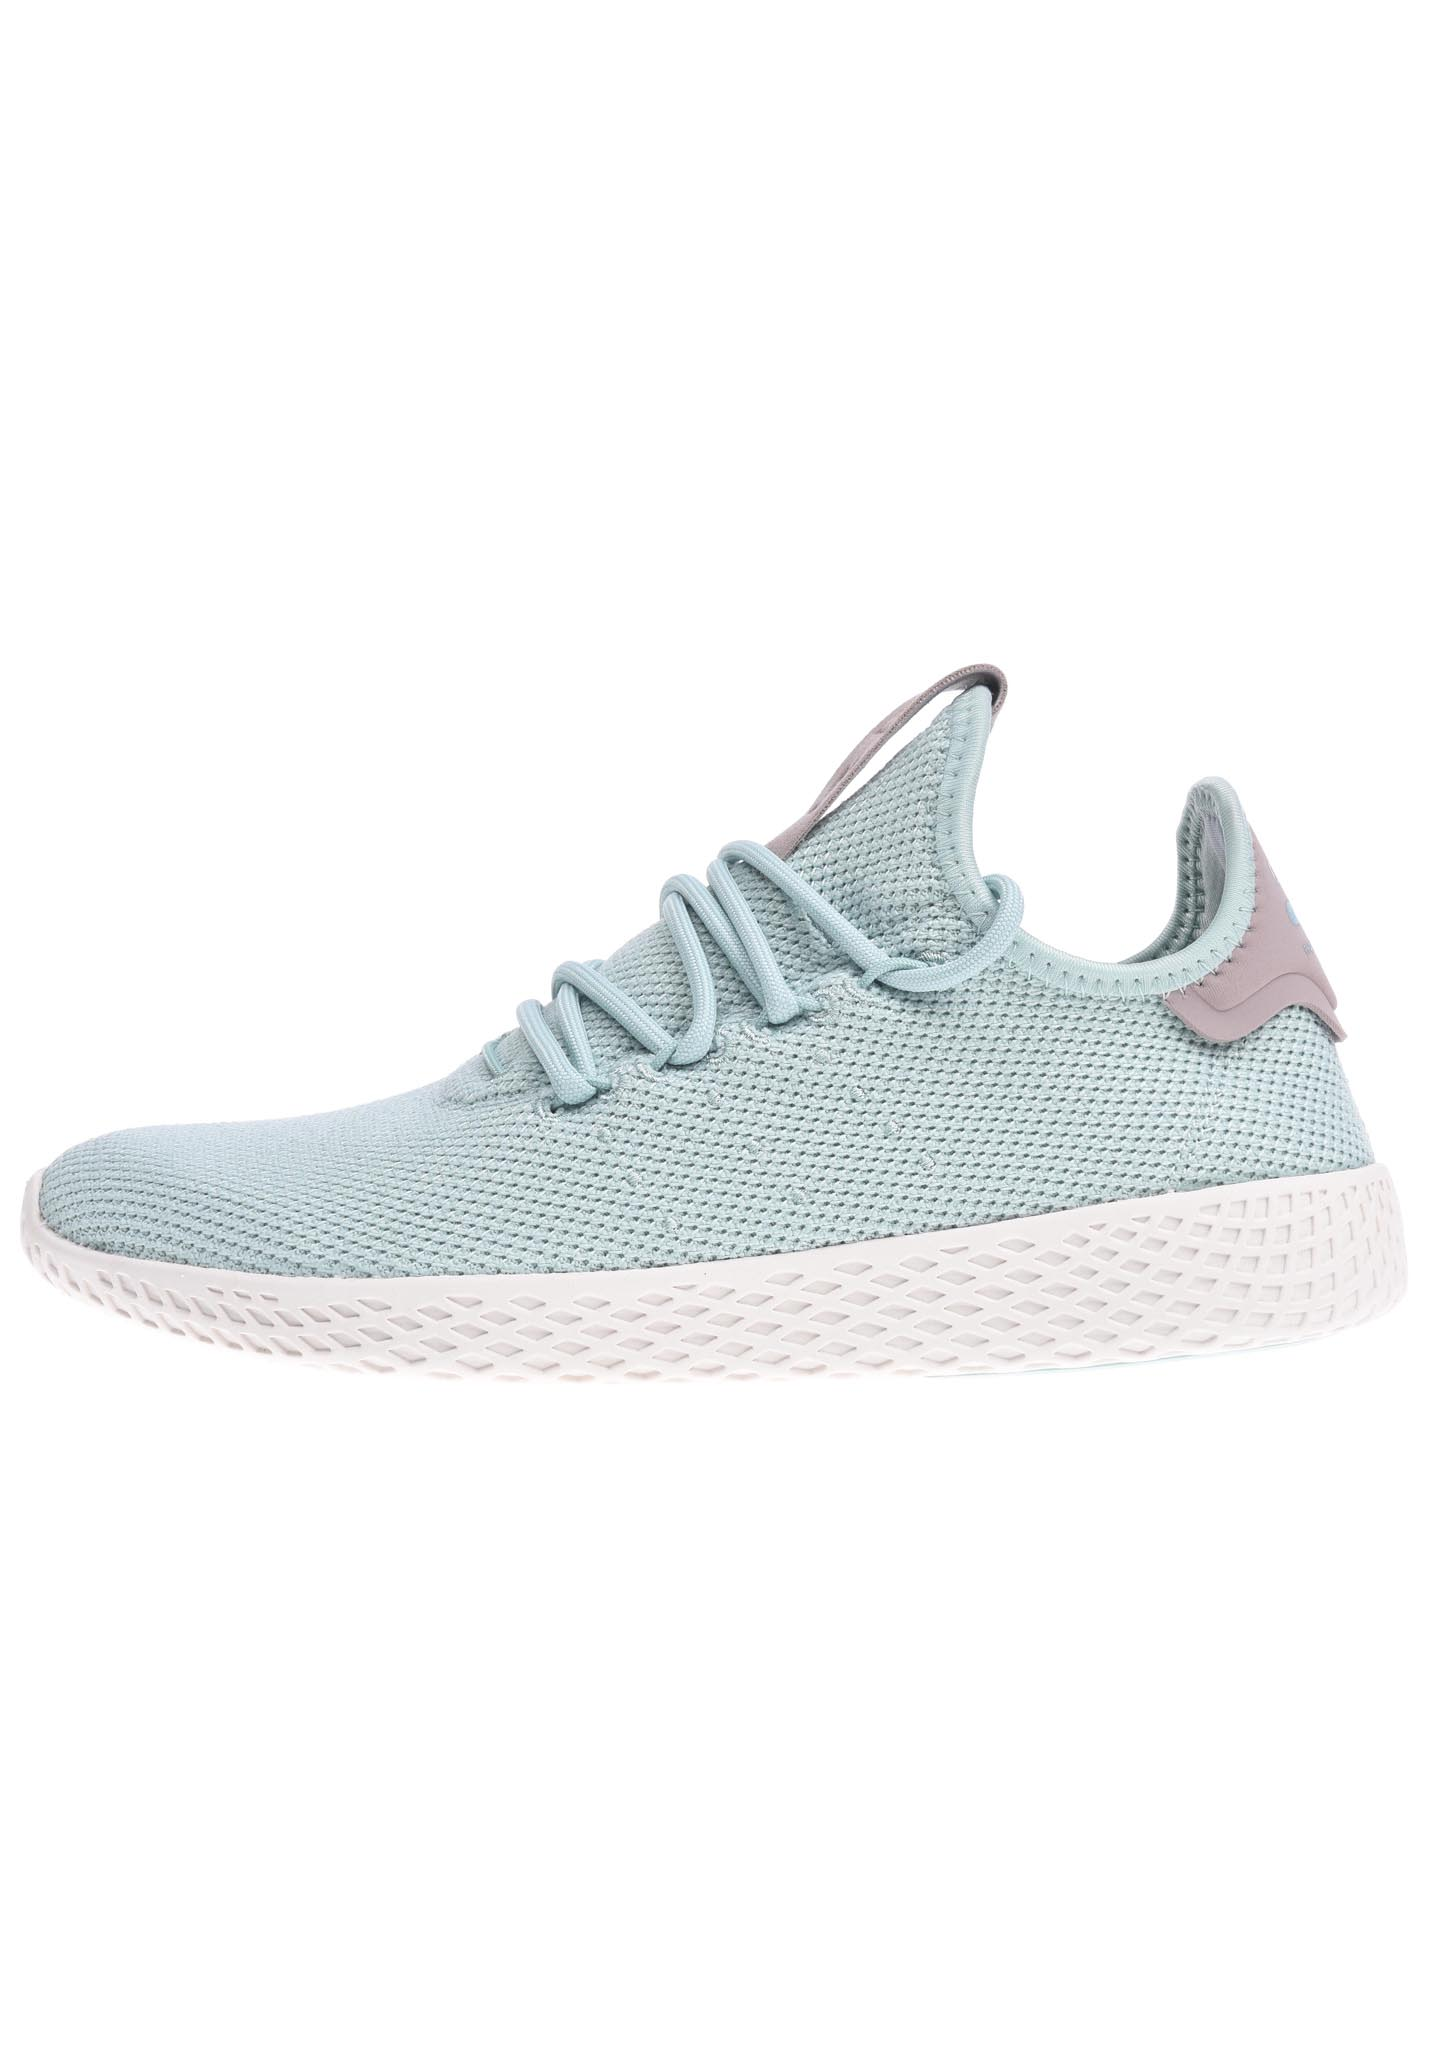 adidas Originals Pharrell Williams Tennis Hu - Sneaker für Damen - Grün